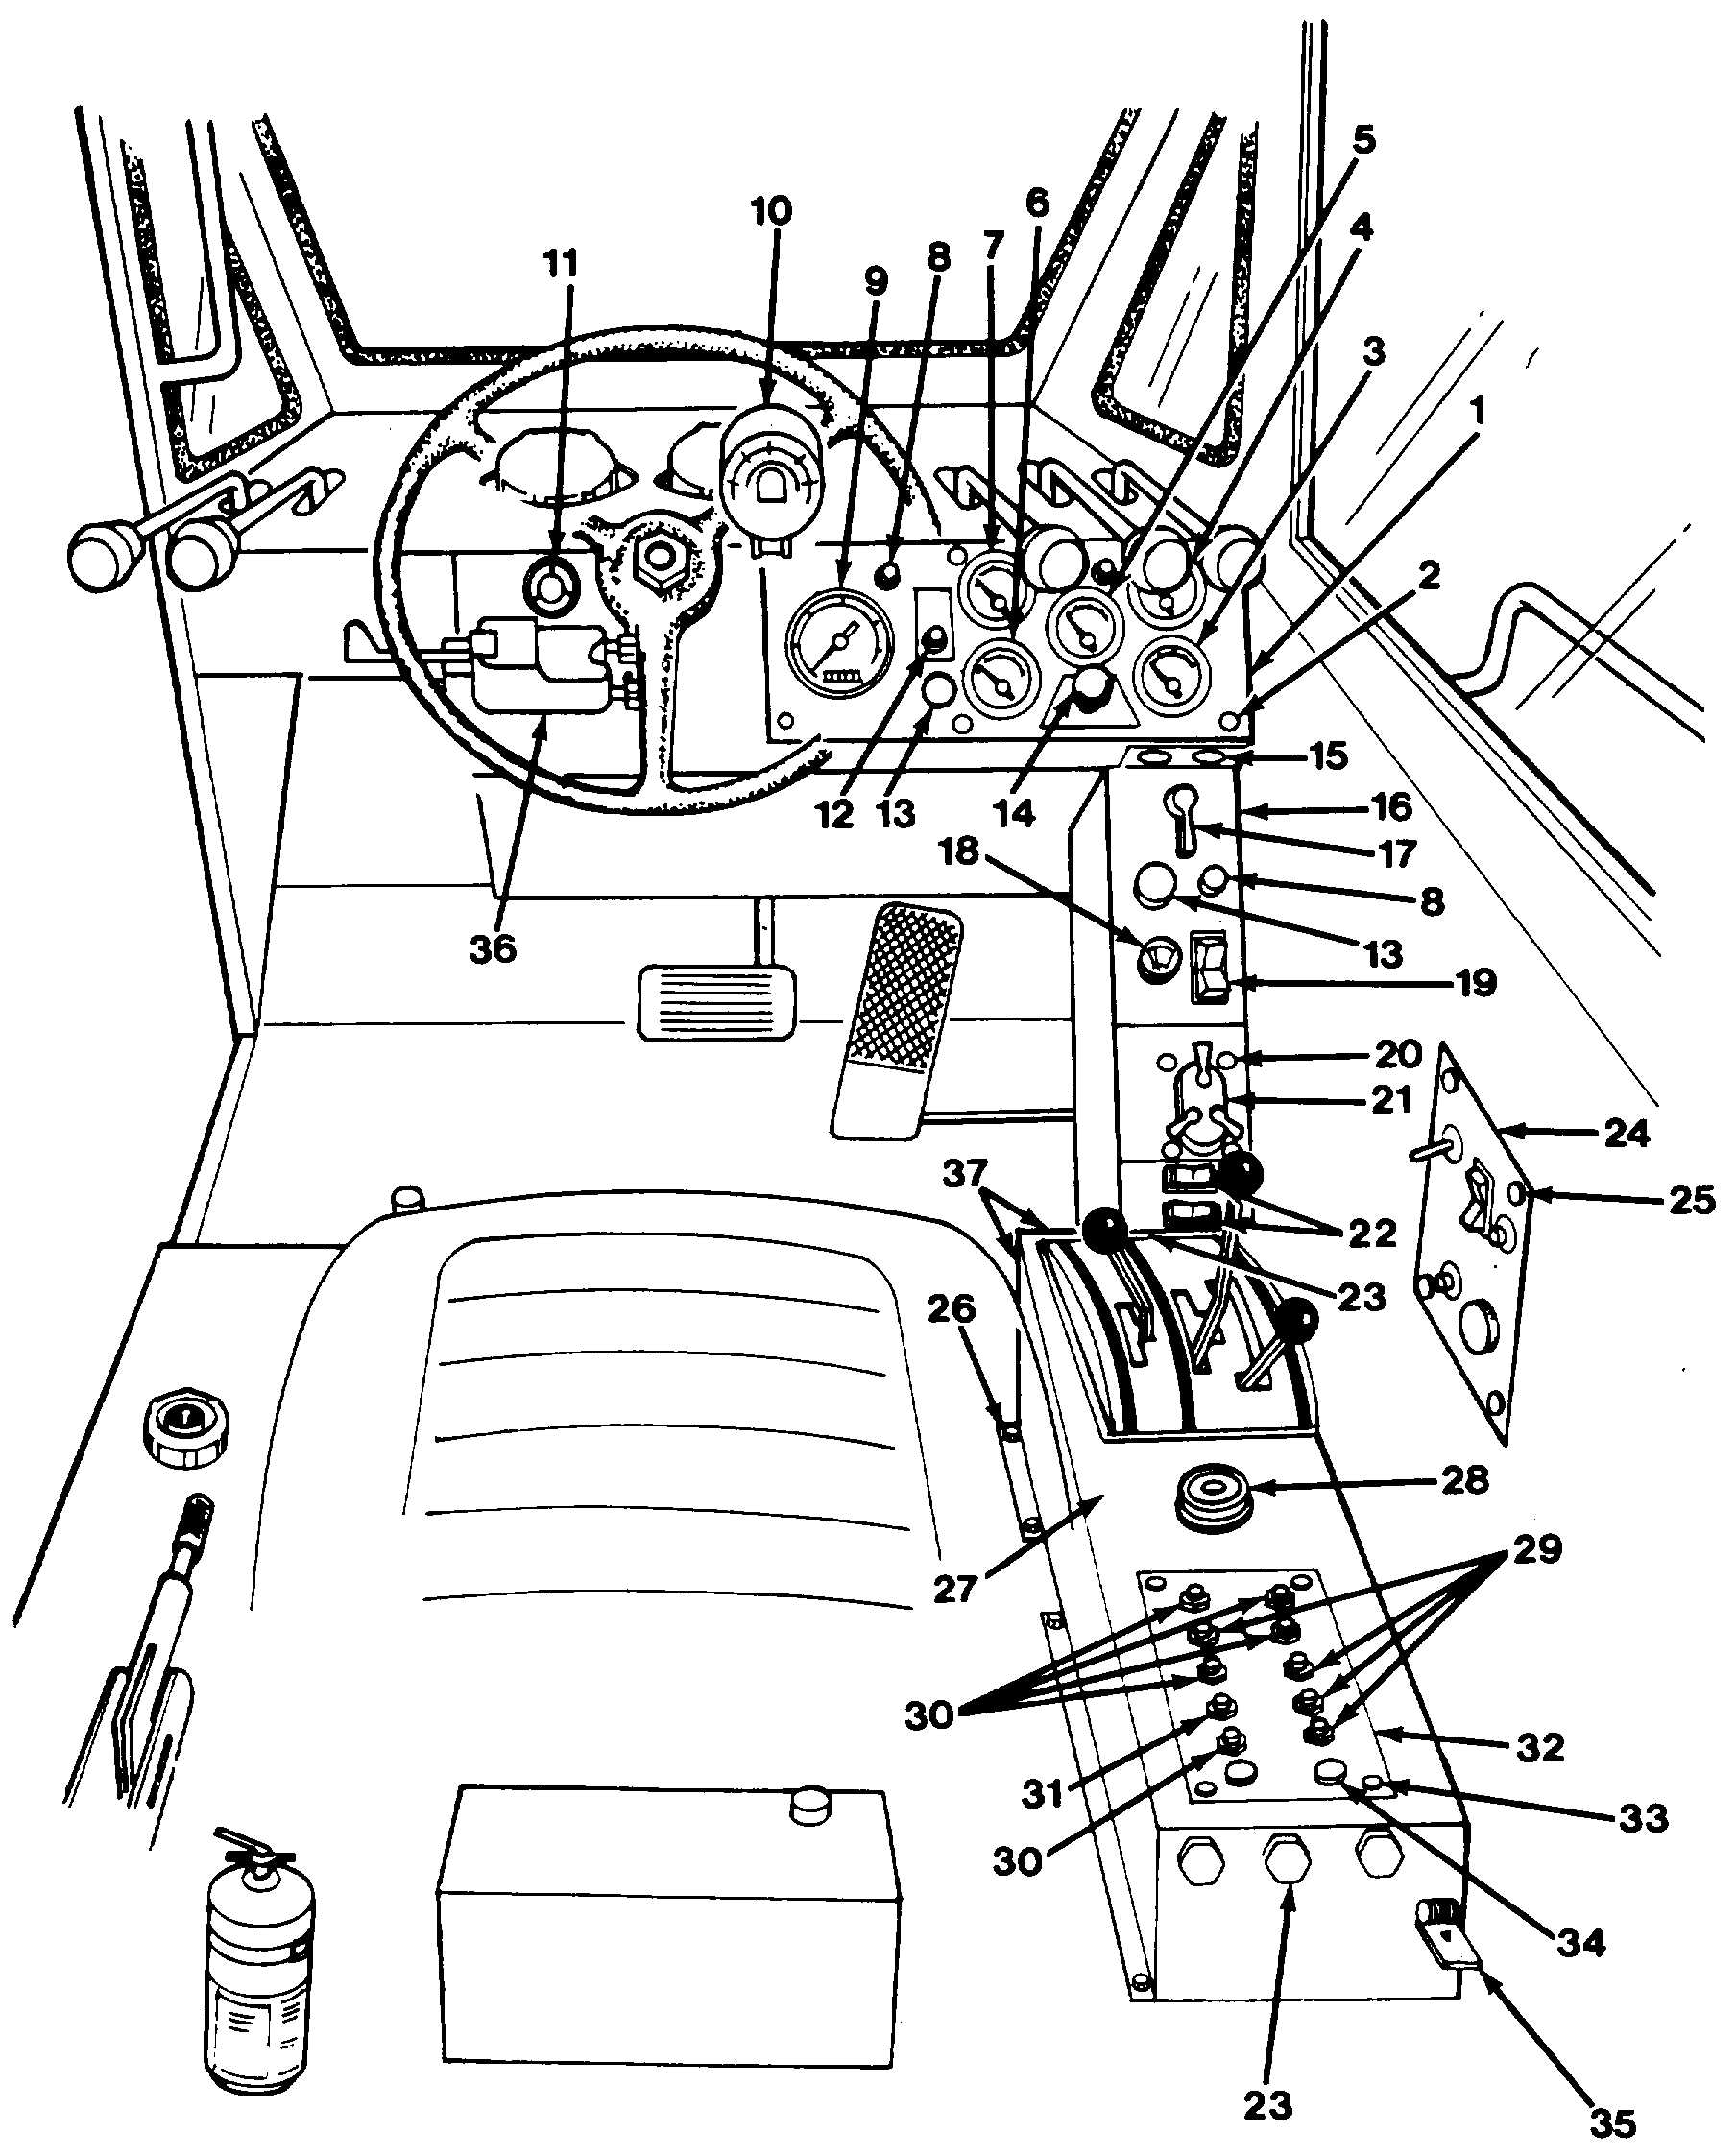 Rascal Chauffeur Scooter Wiring Diagram. . Wiring Diagram on